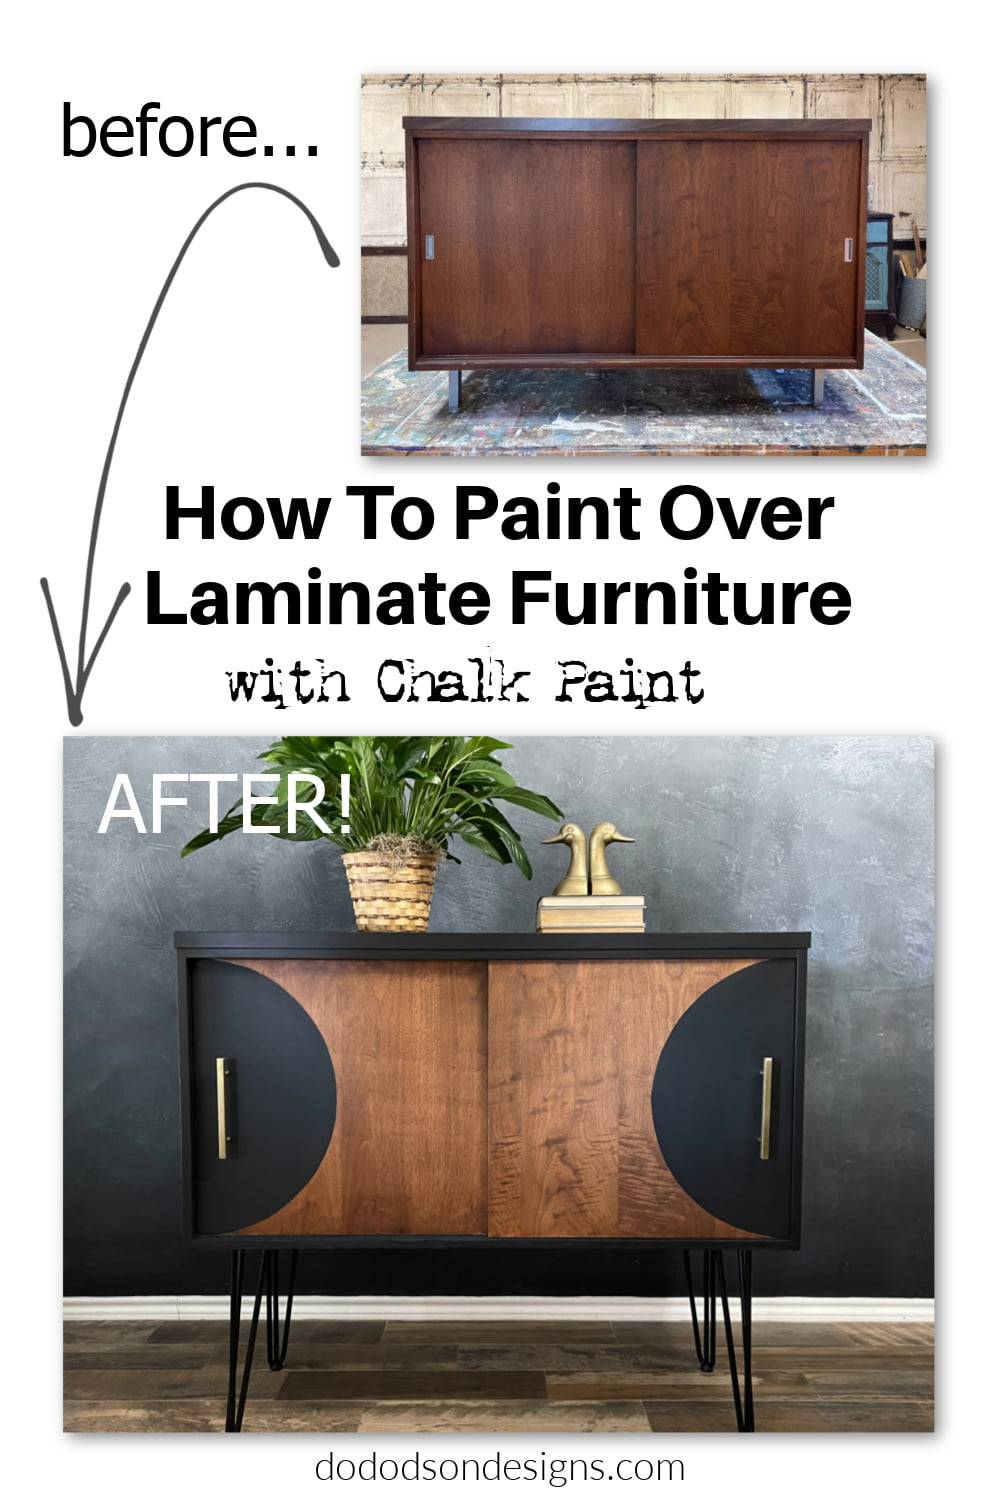 How To Paint Over Laminate Furniture - With Chalk Paint